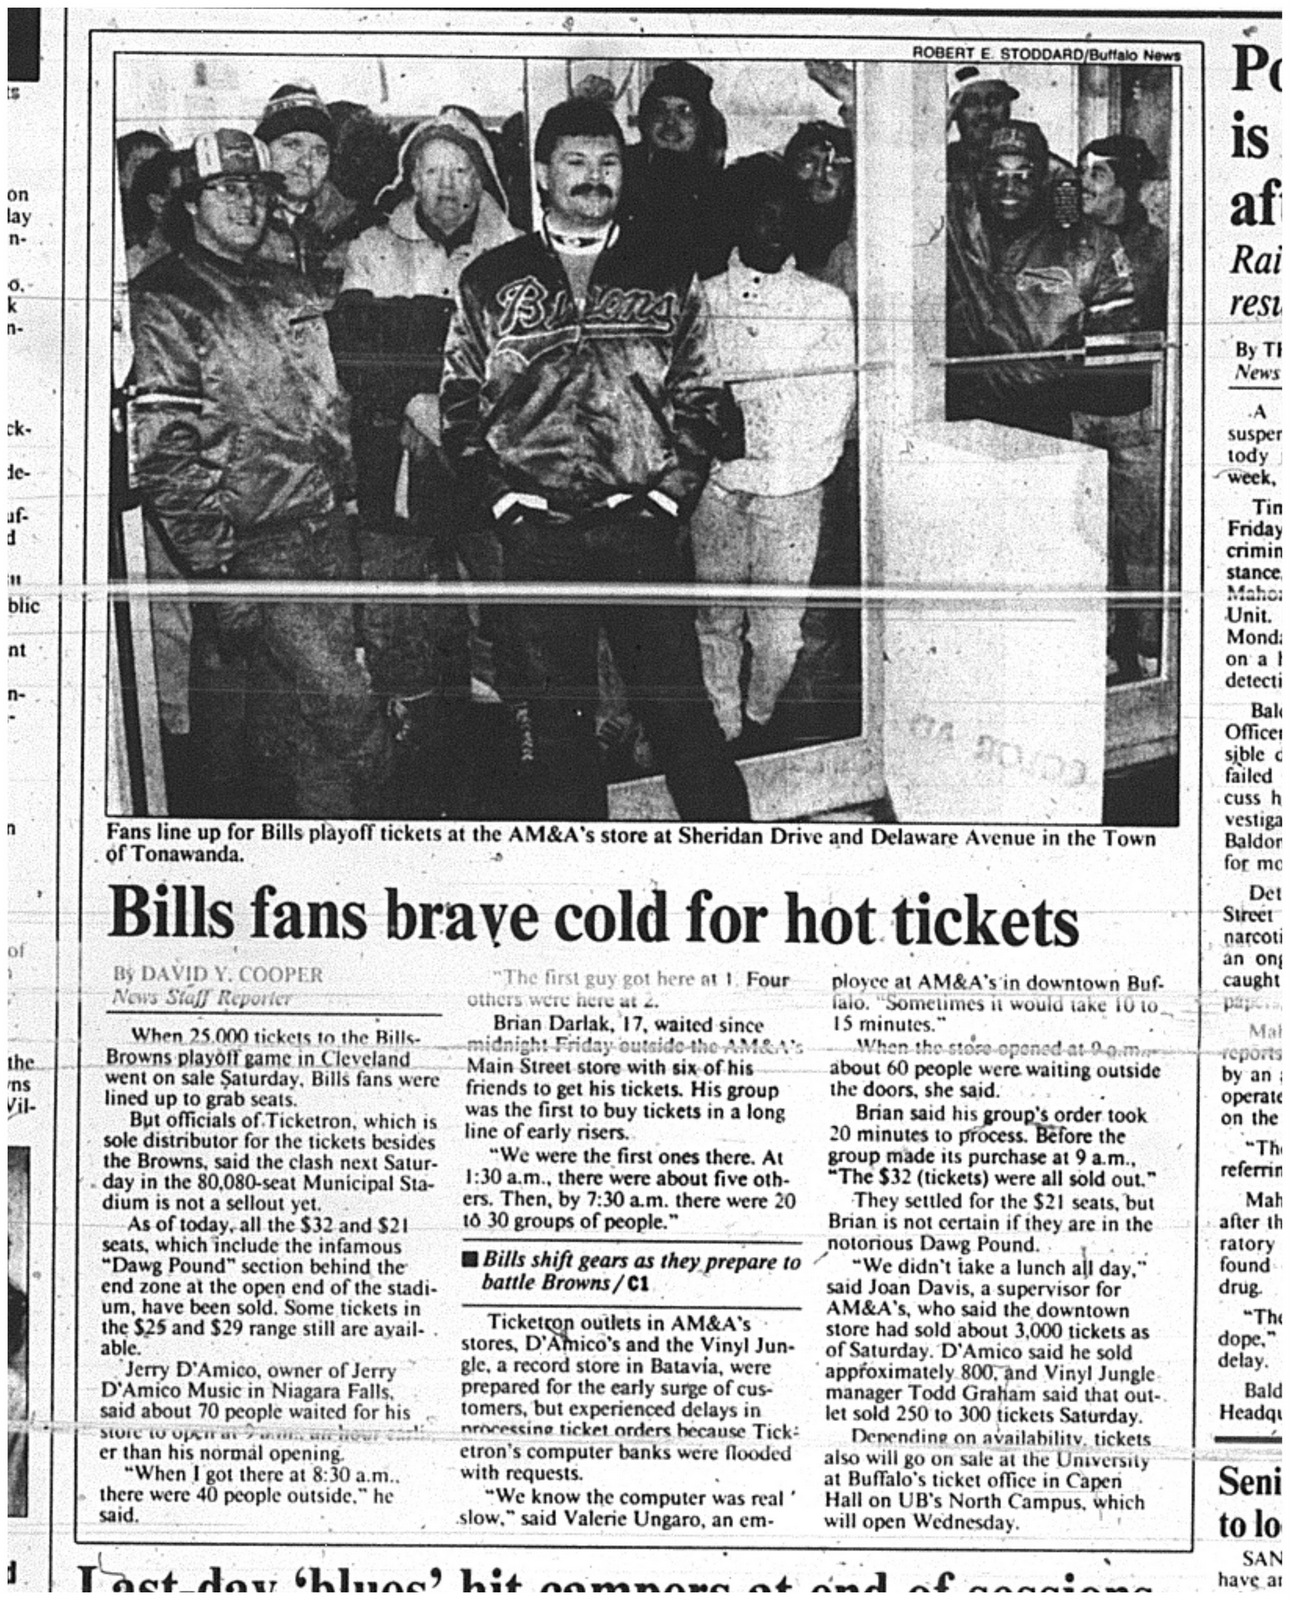 from The Buffalo News (Buffalo Stories archives)